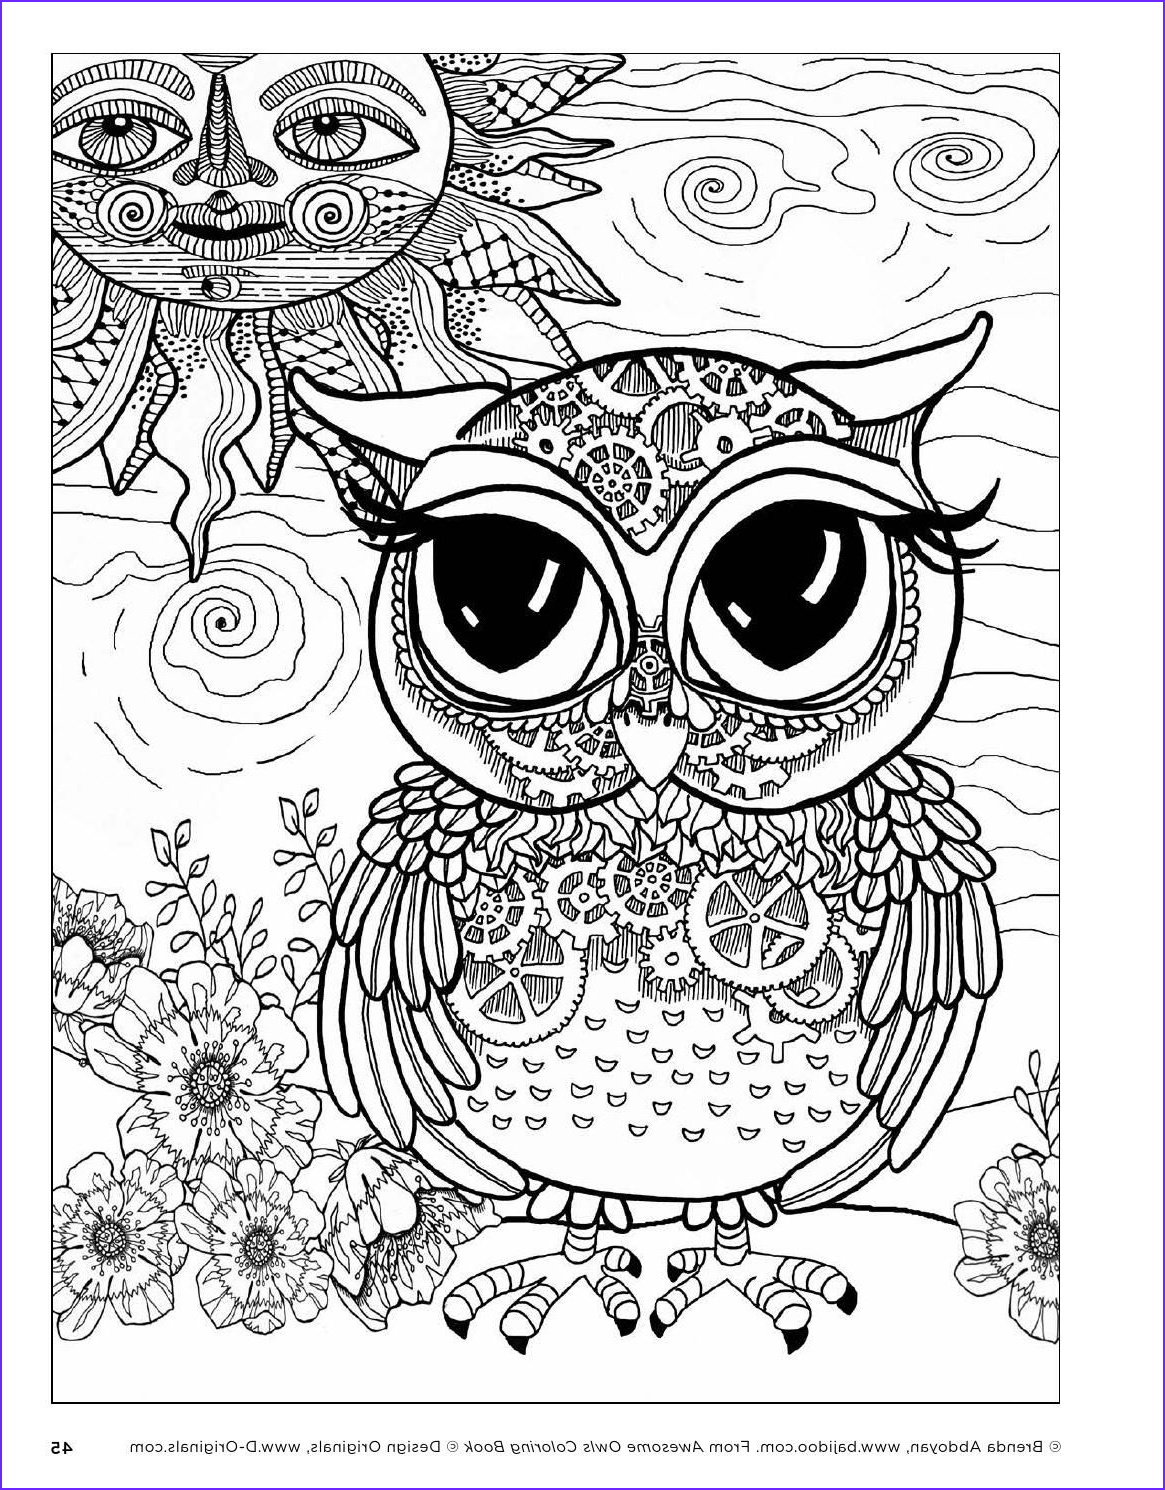 Owl Coloring Books for Adults Unique Image Awesome Owls Coloring Book by Fox Chapel Publishing